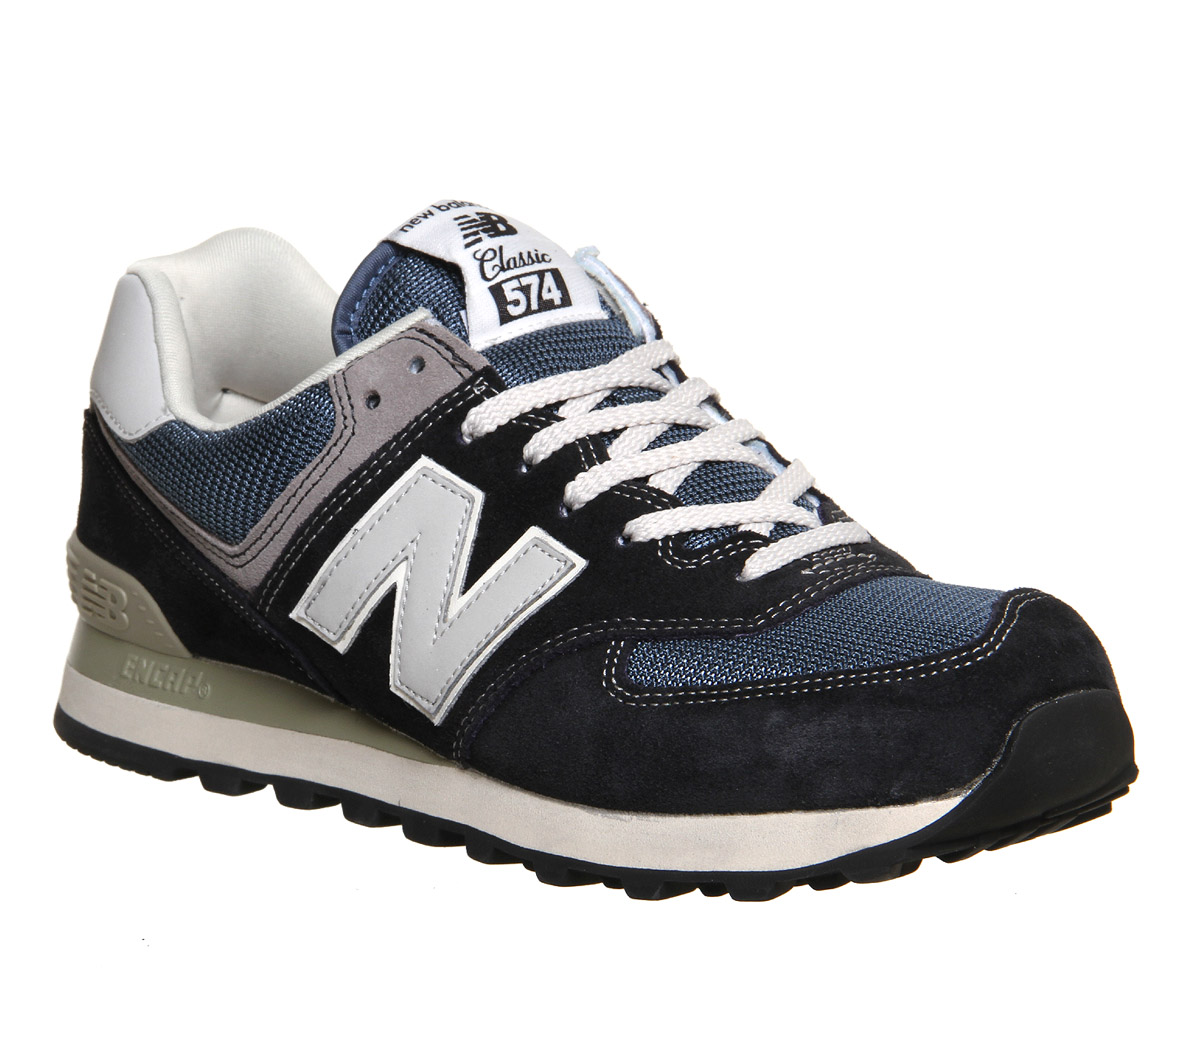 Ebay Uk Shoes New Balance